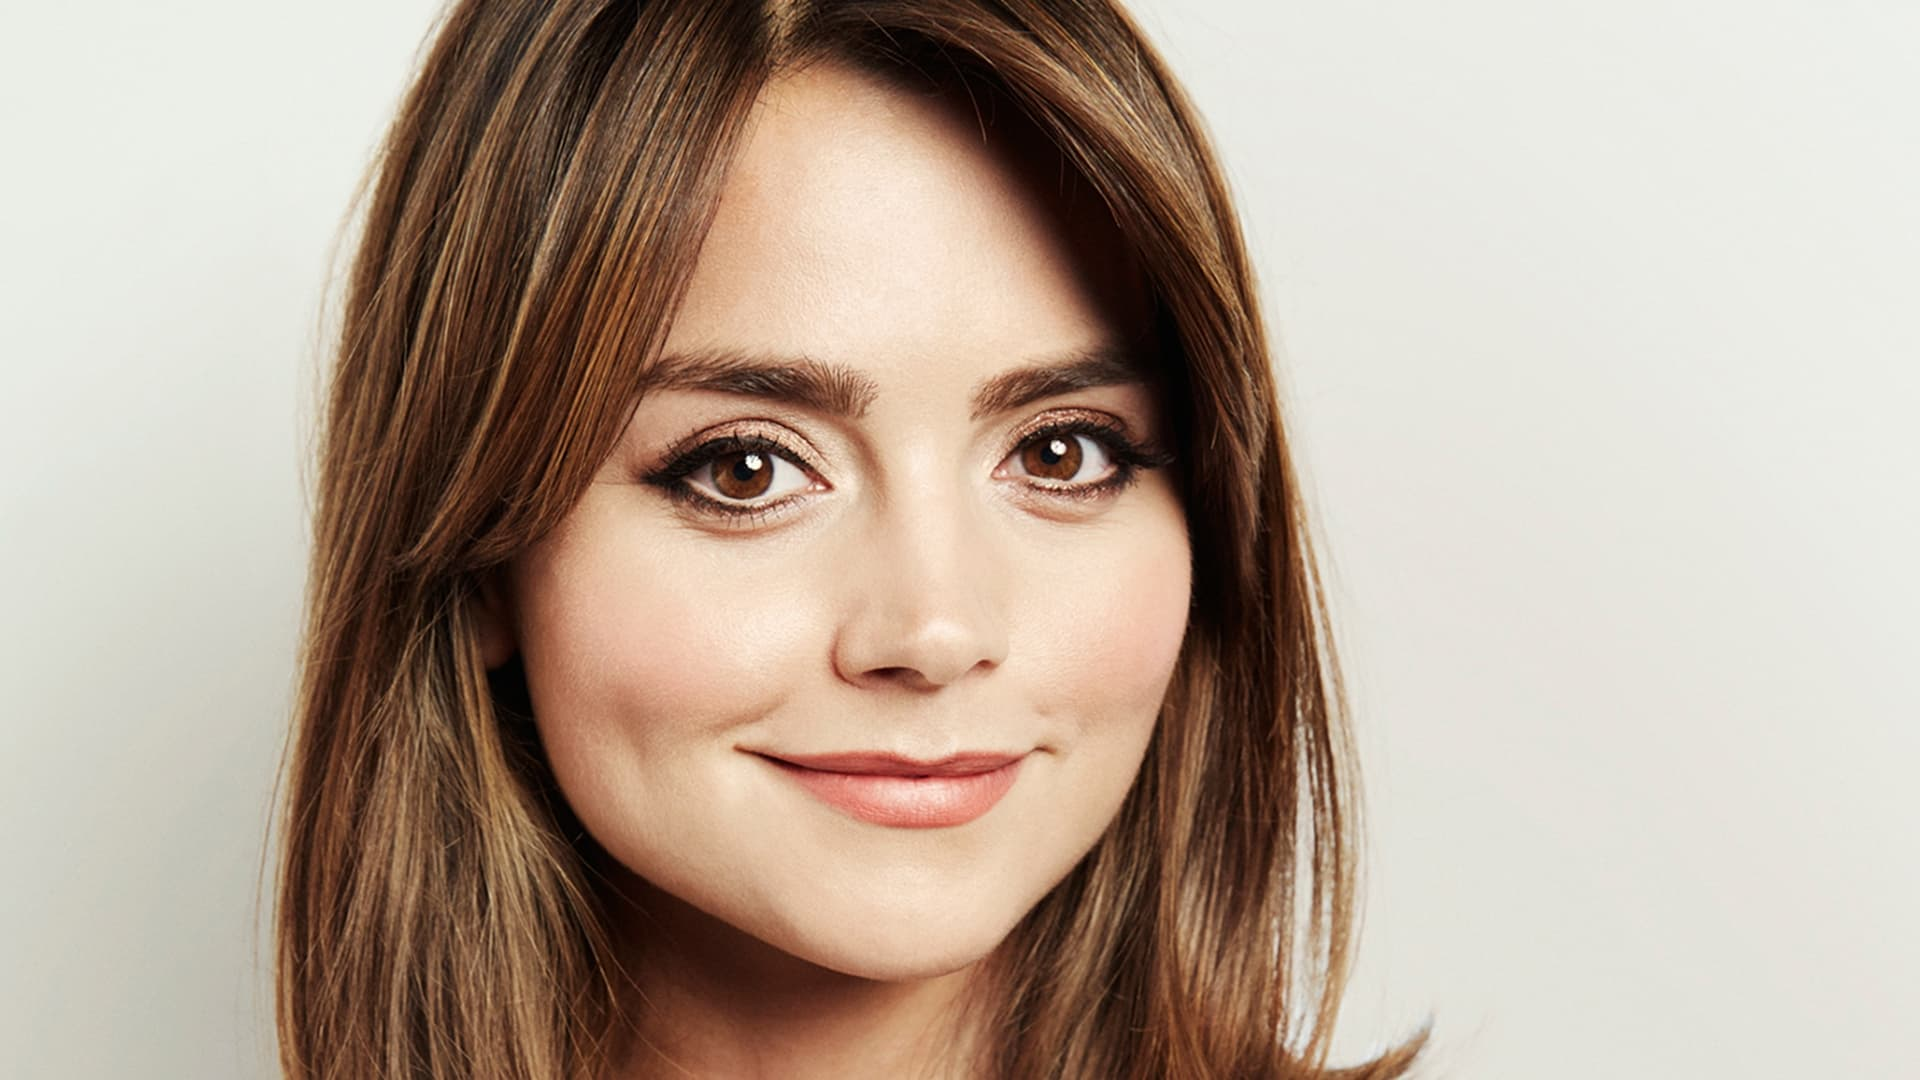 Jenna Coleman High Quality wallpaper 1920x1080